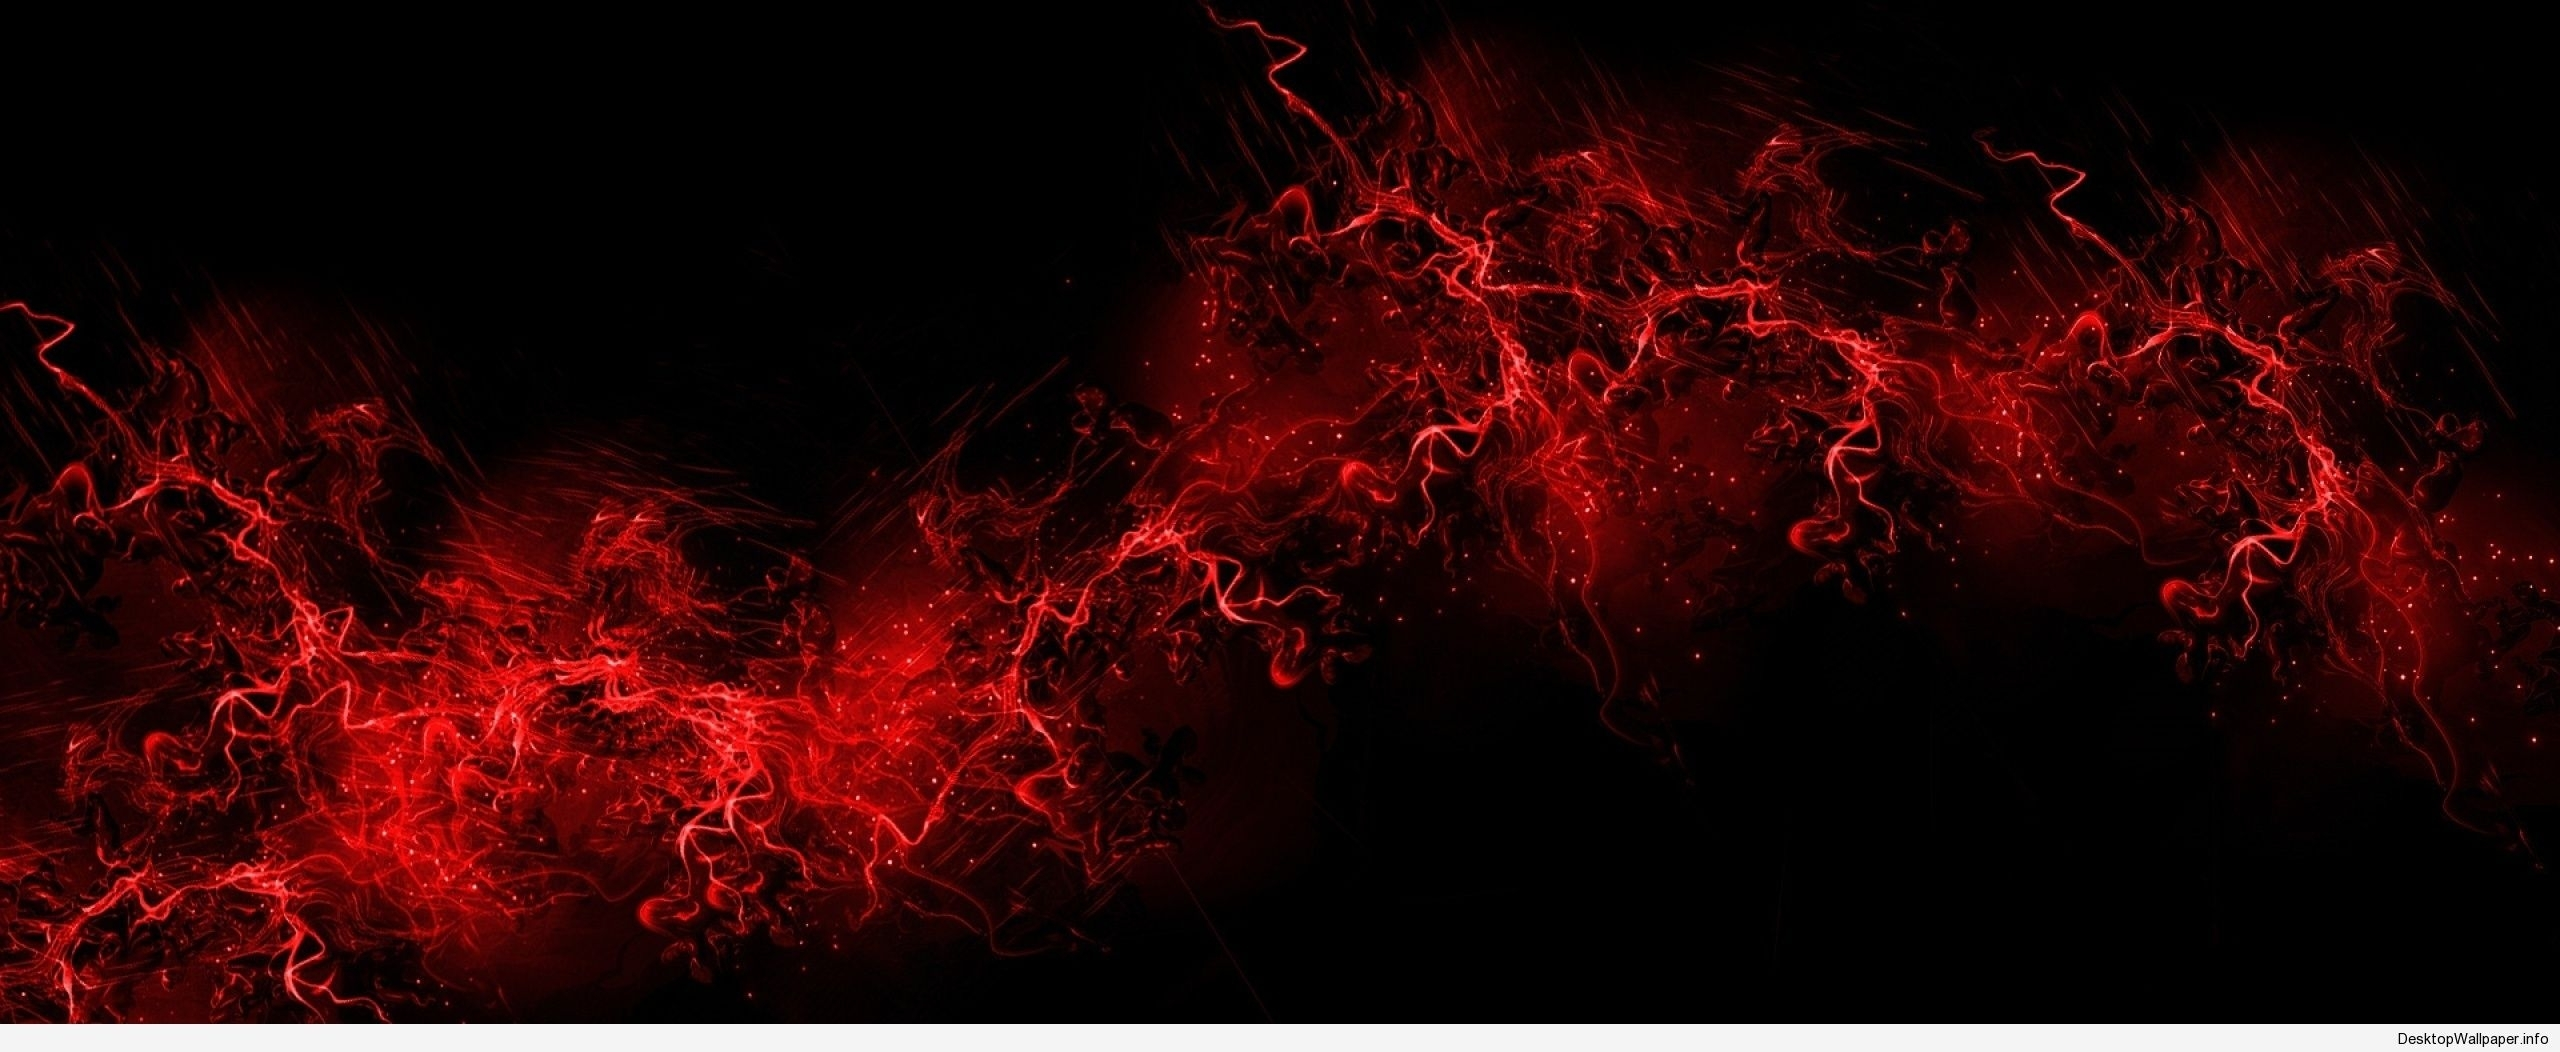 black and red dual monitor wallpaper - http://desktopwallpaper